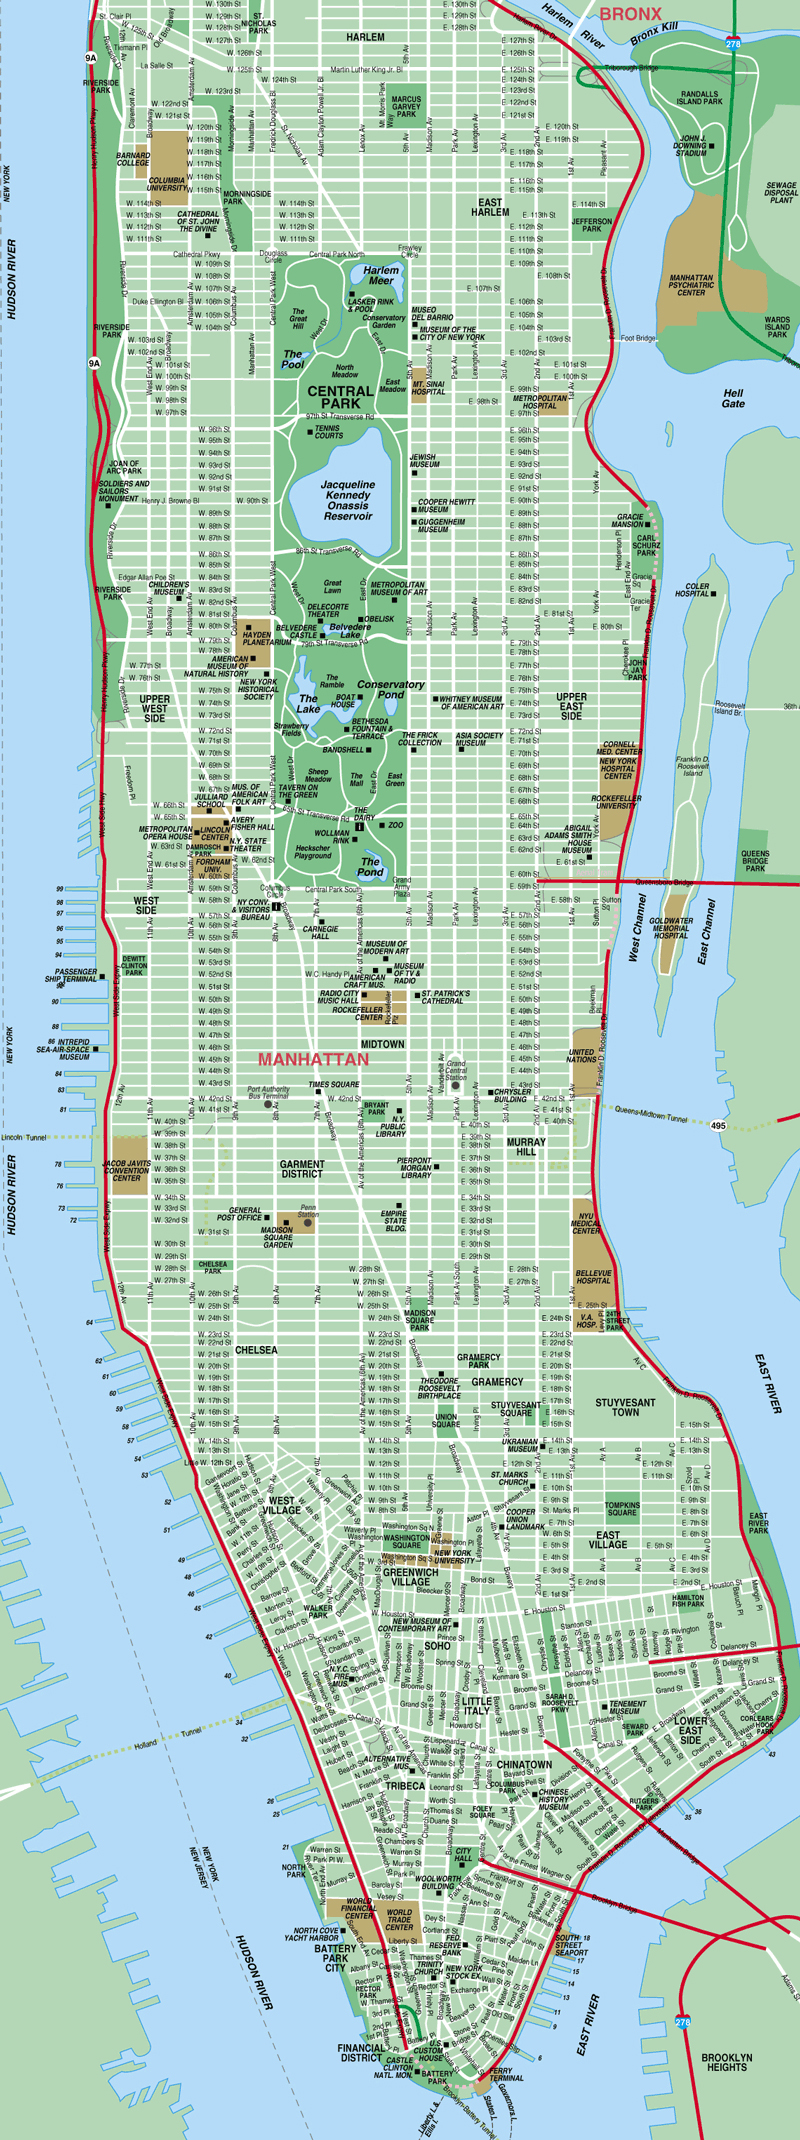 Map of Manhattan New York, NY System, http://www.new-york-city-map.com/manhattan-map.gif